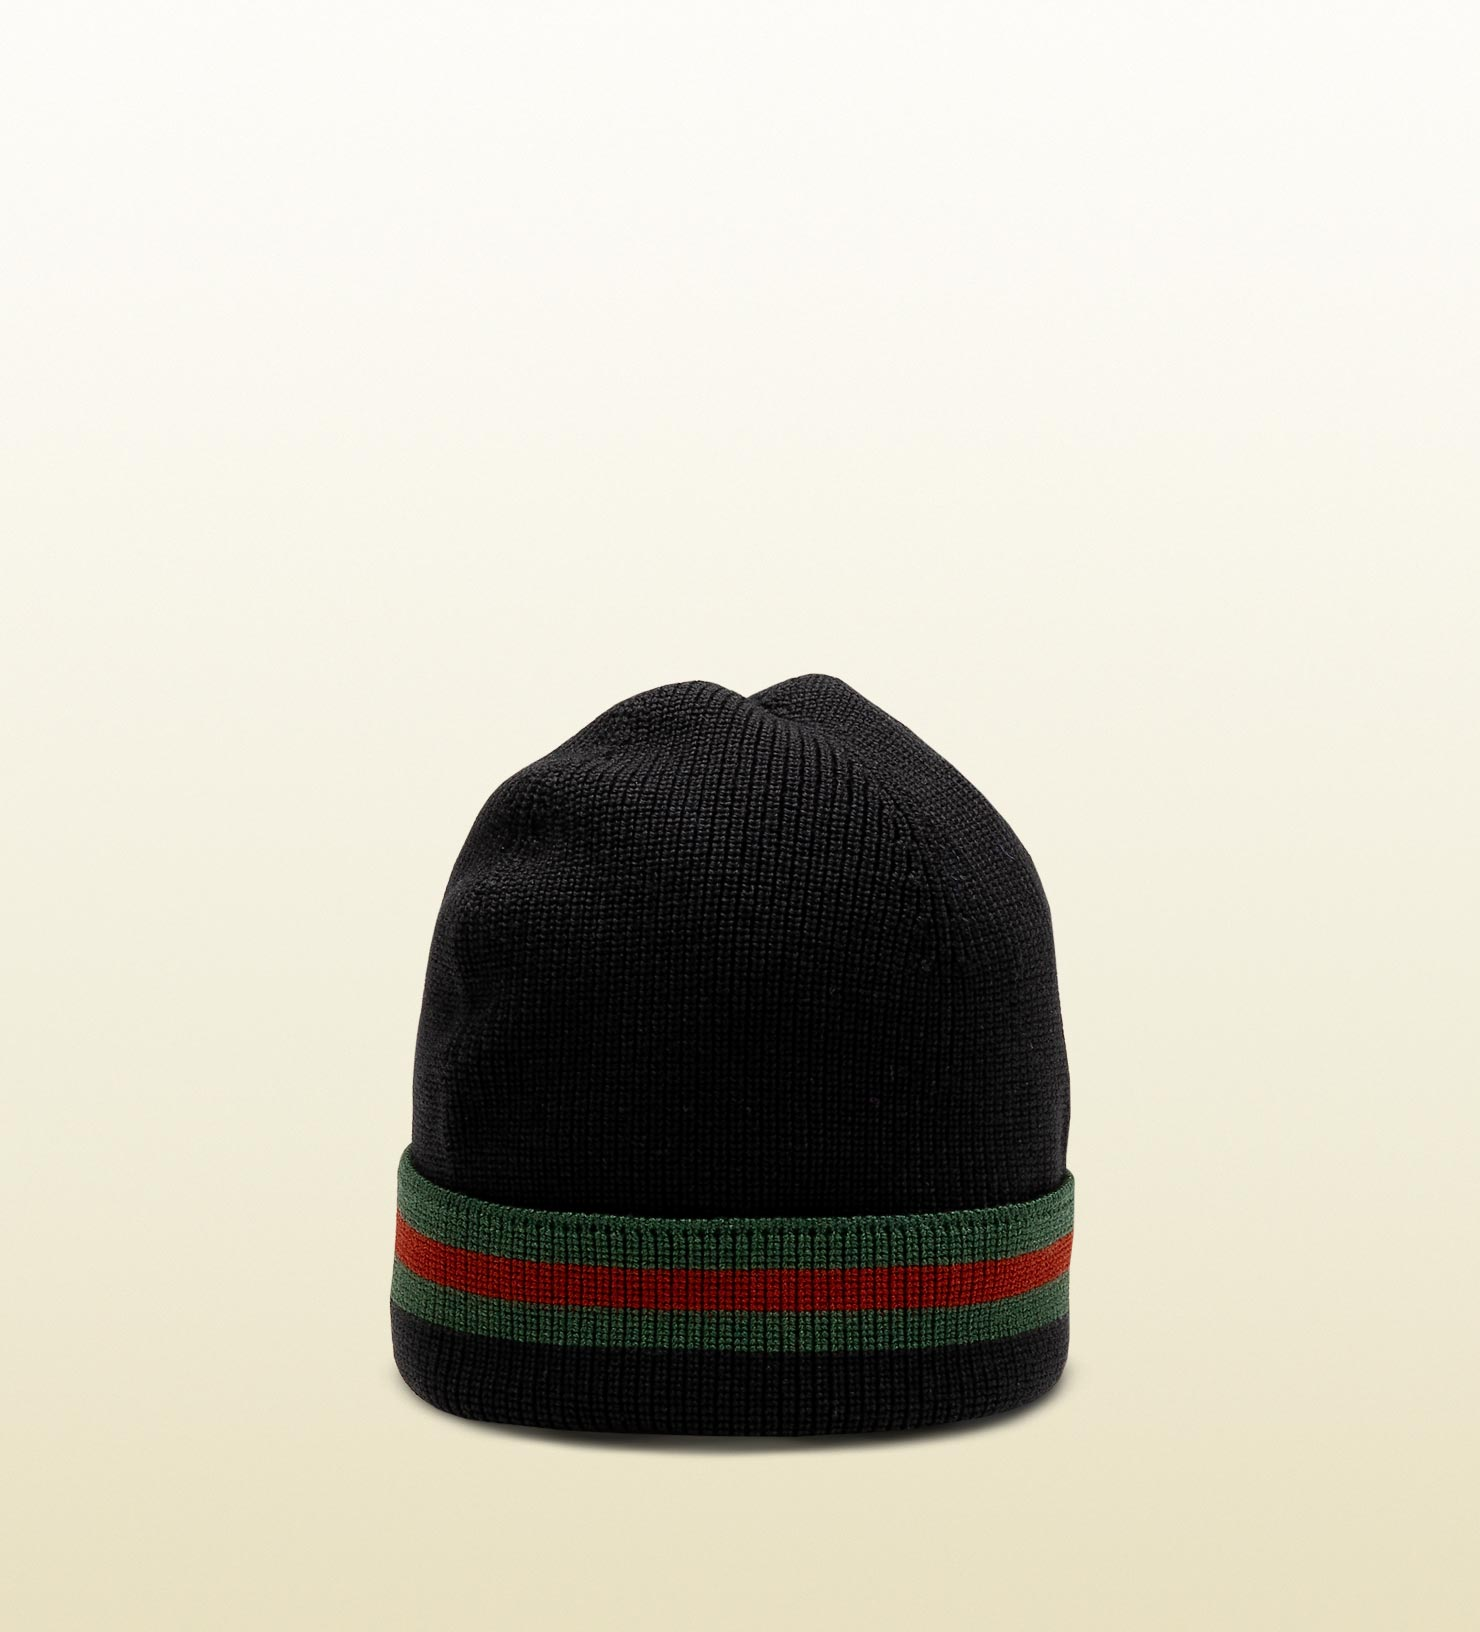 Gucci Hats For Men: Gucci Knit Wool Web Hat In Black For Men